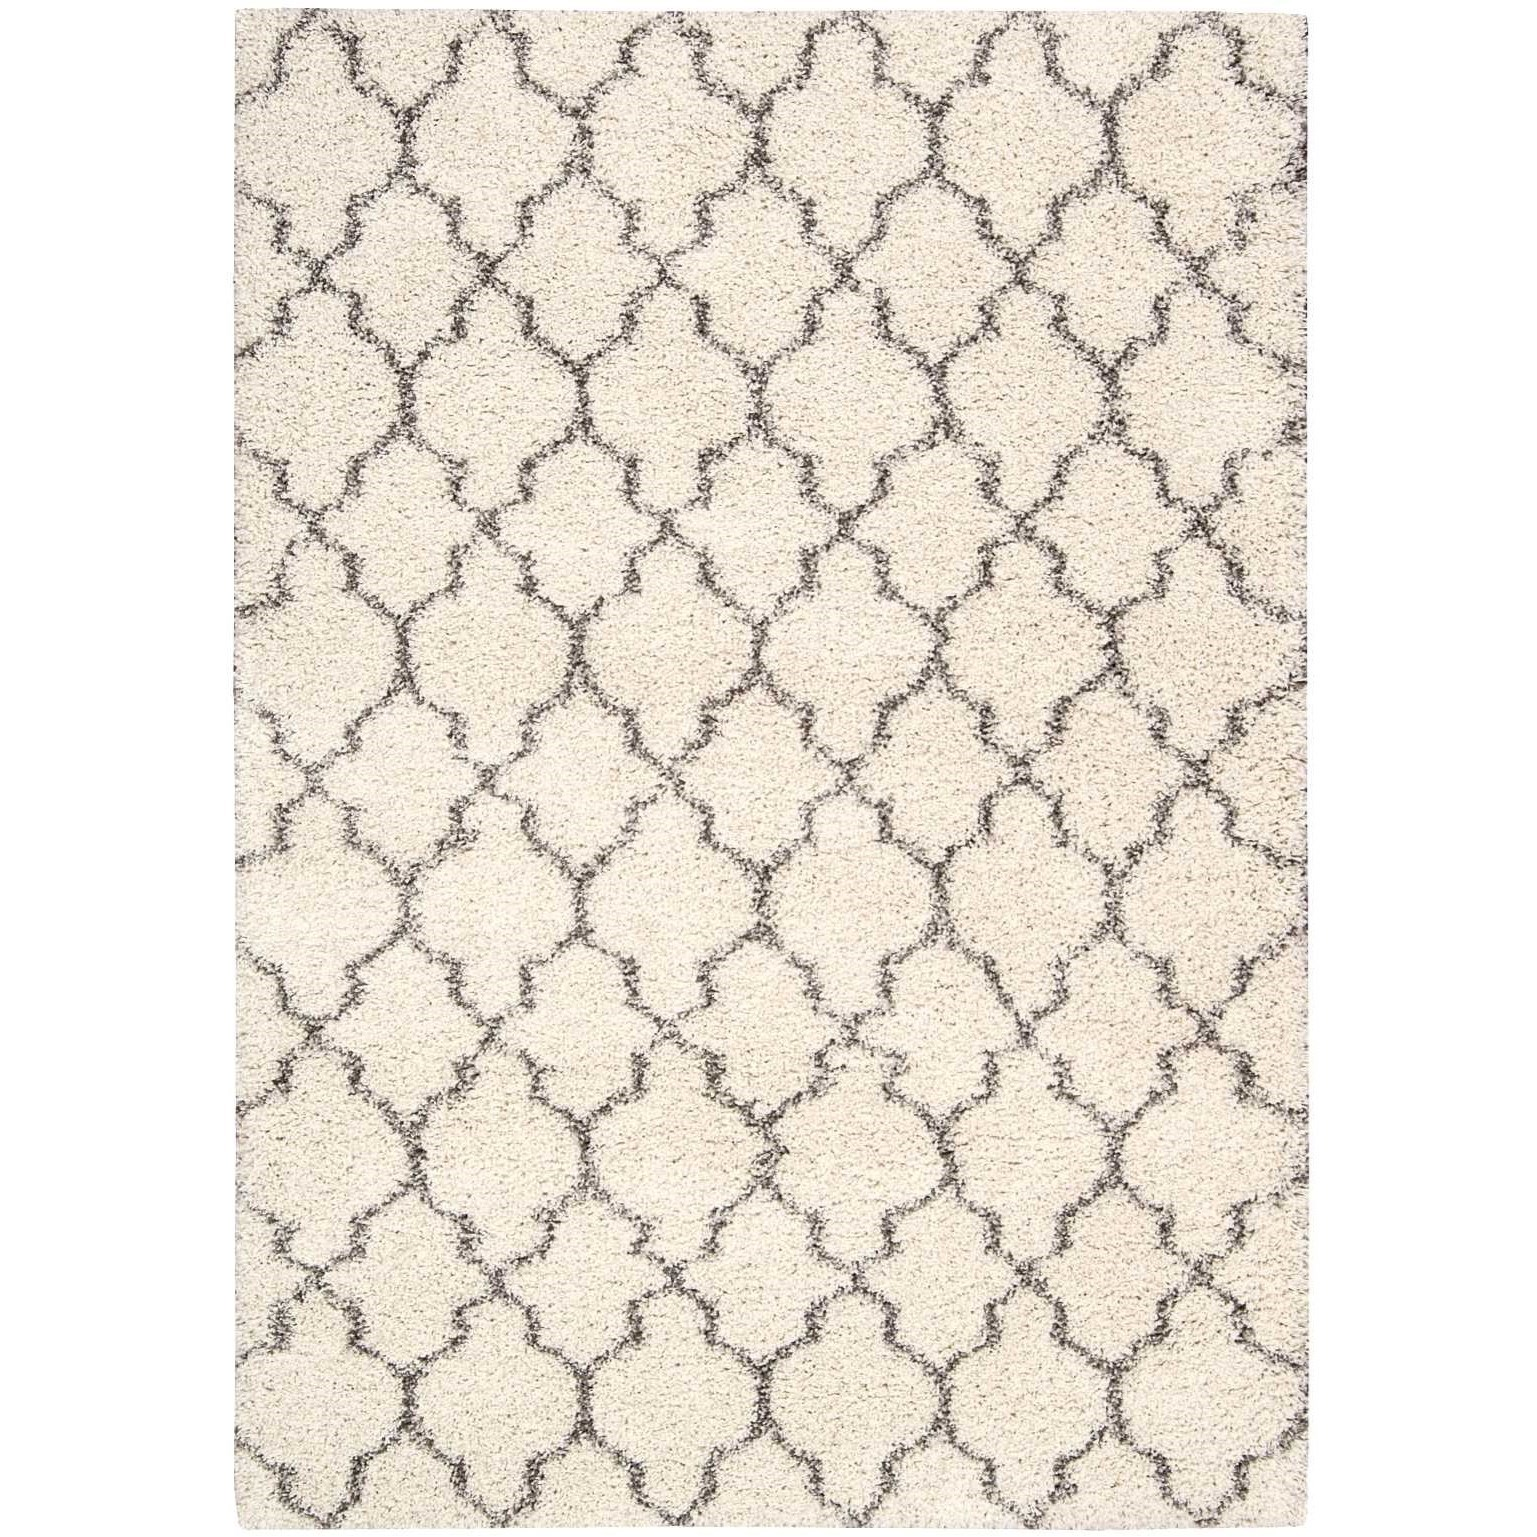 "Amore 3'11"" x 5'11"" Cream Rectangle Rug by Nourison at Home Collections Furniture"